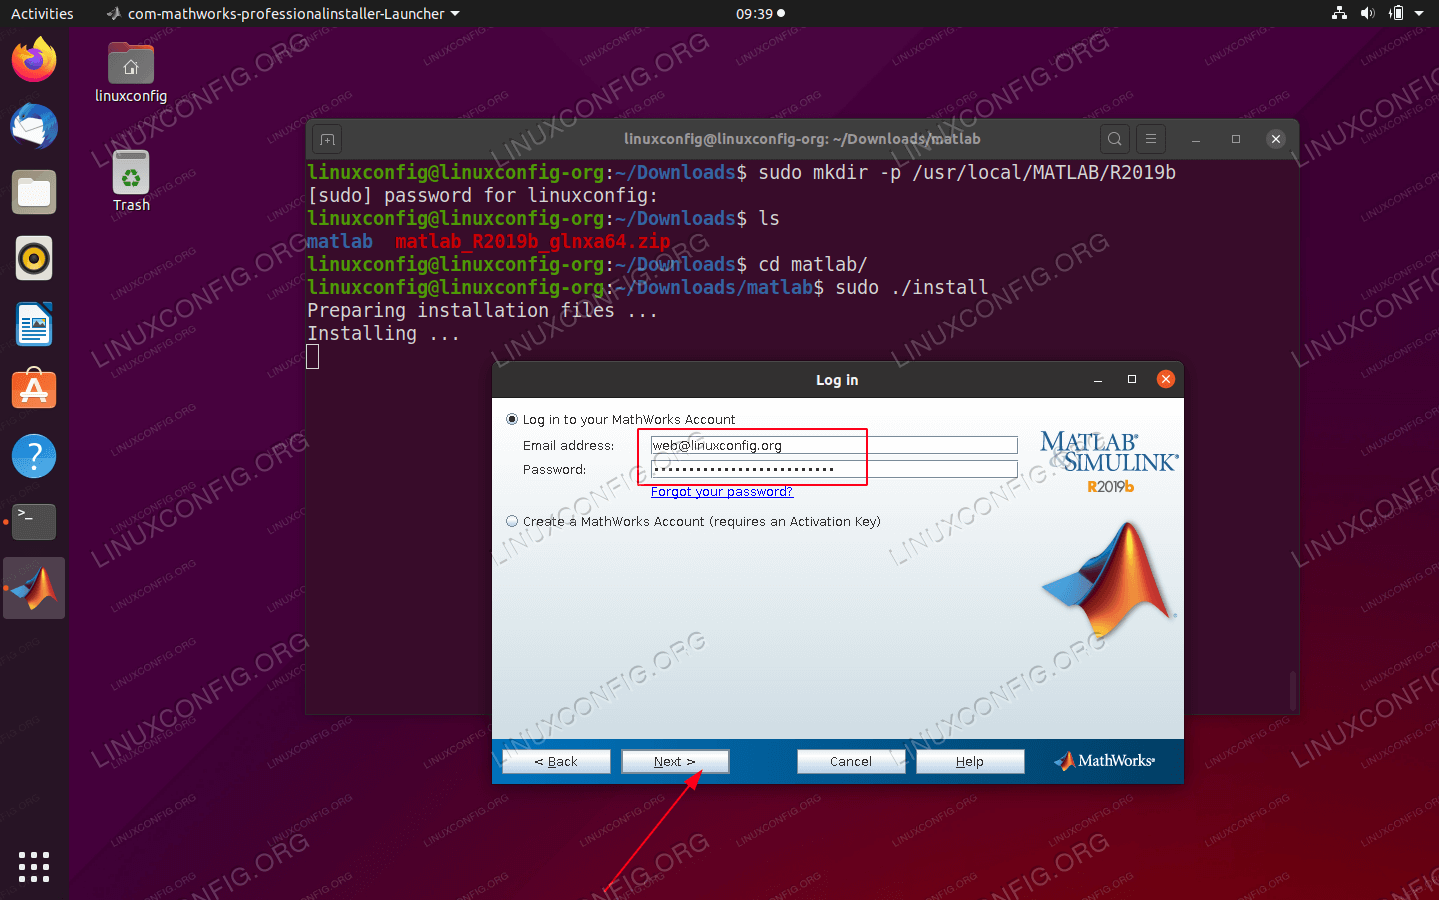 Create MathWorks account or provide your existing Login credentials